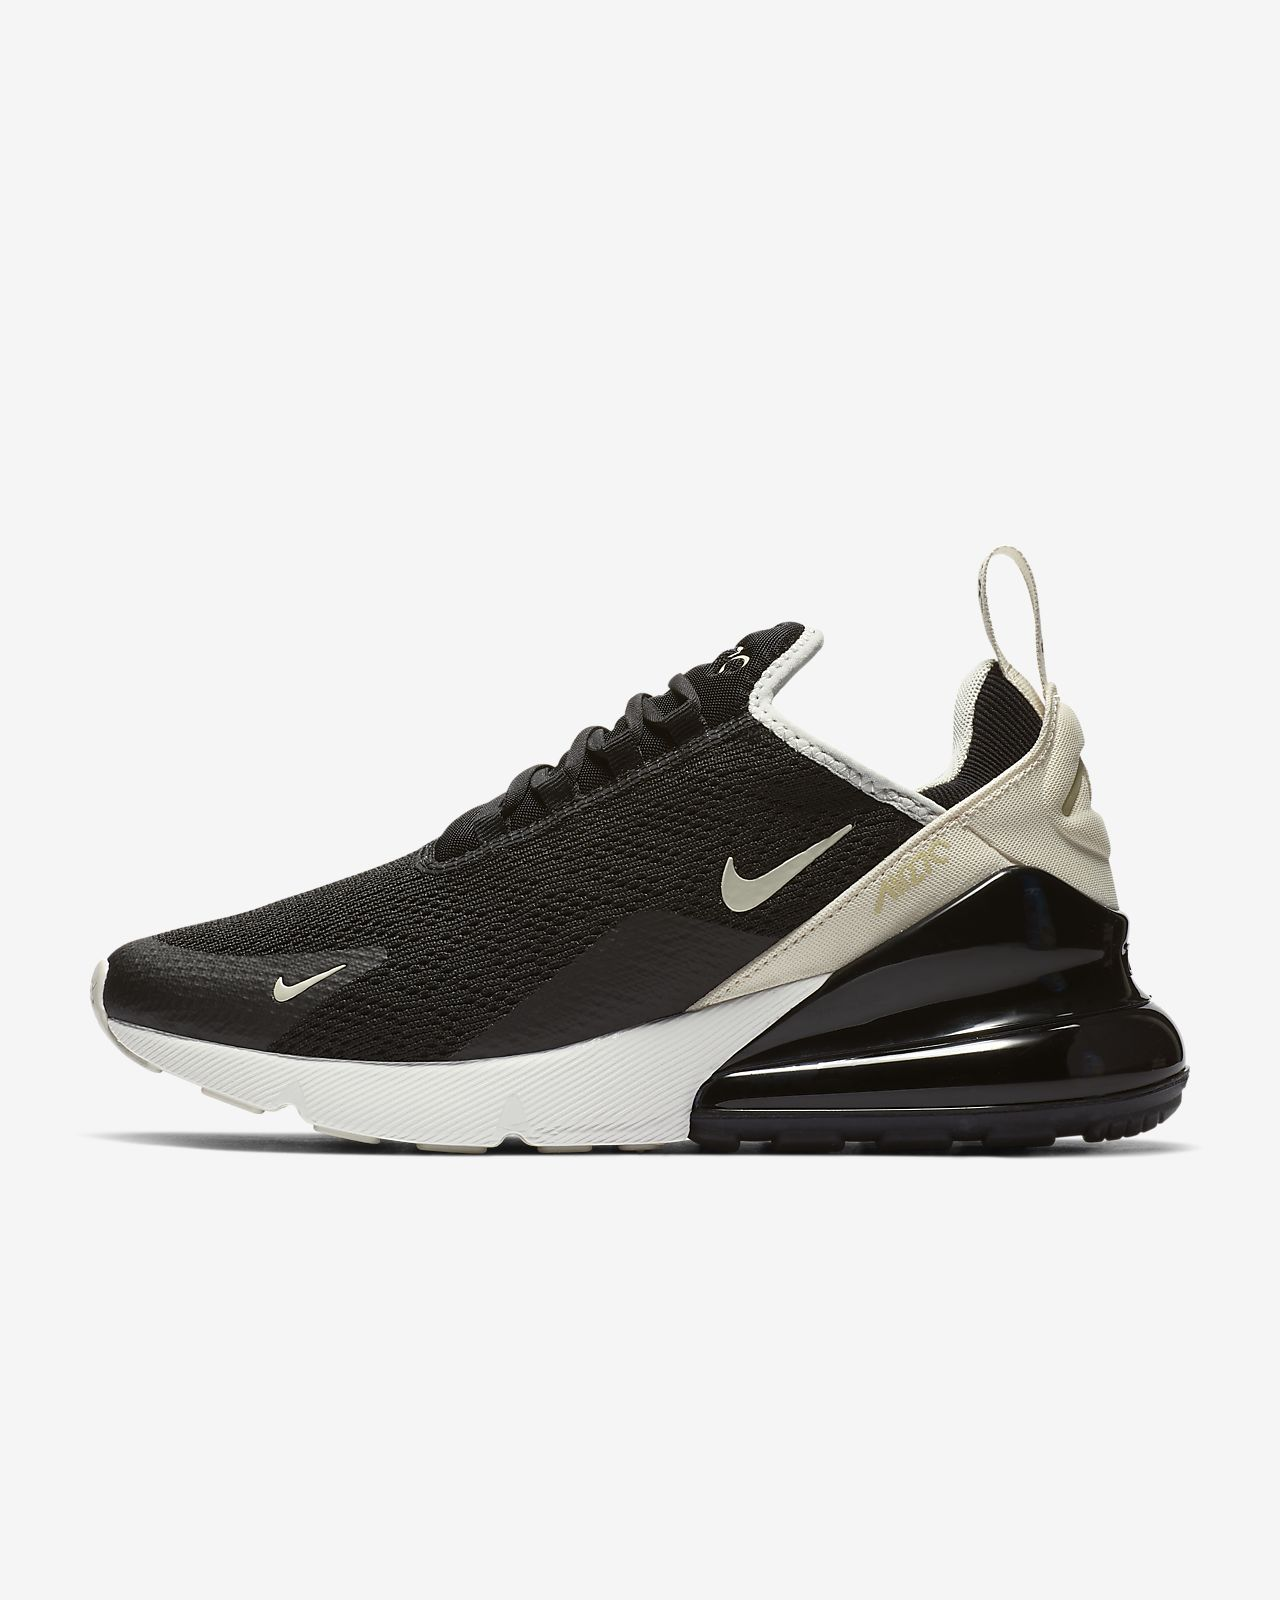 2c3475dfe75 Nike Air Max 270 Women s Shoe. Nike.com CA